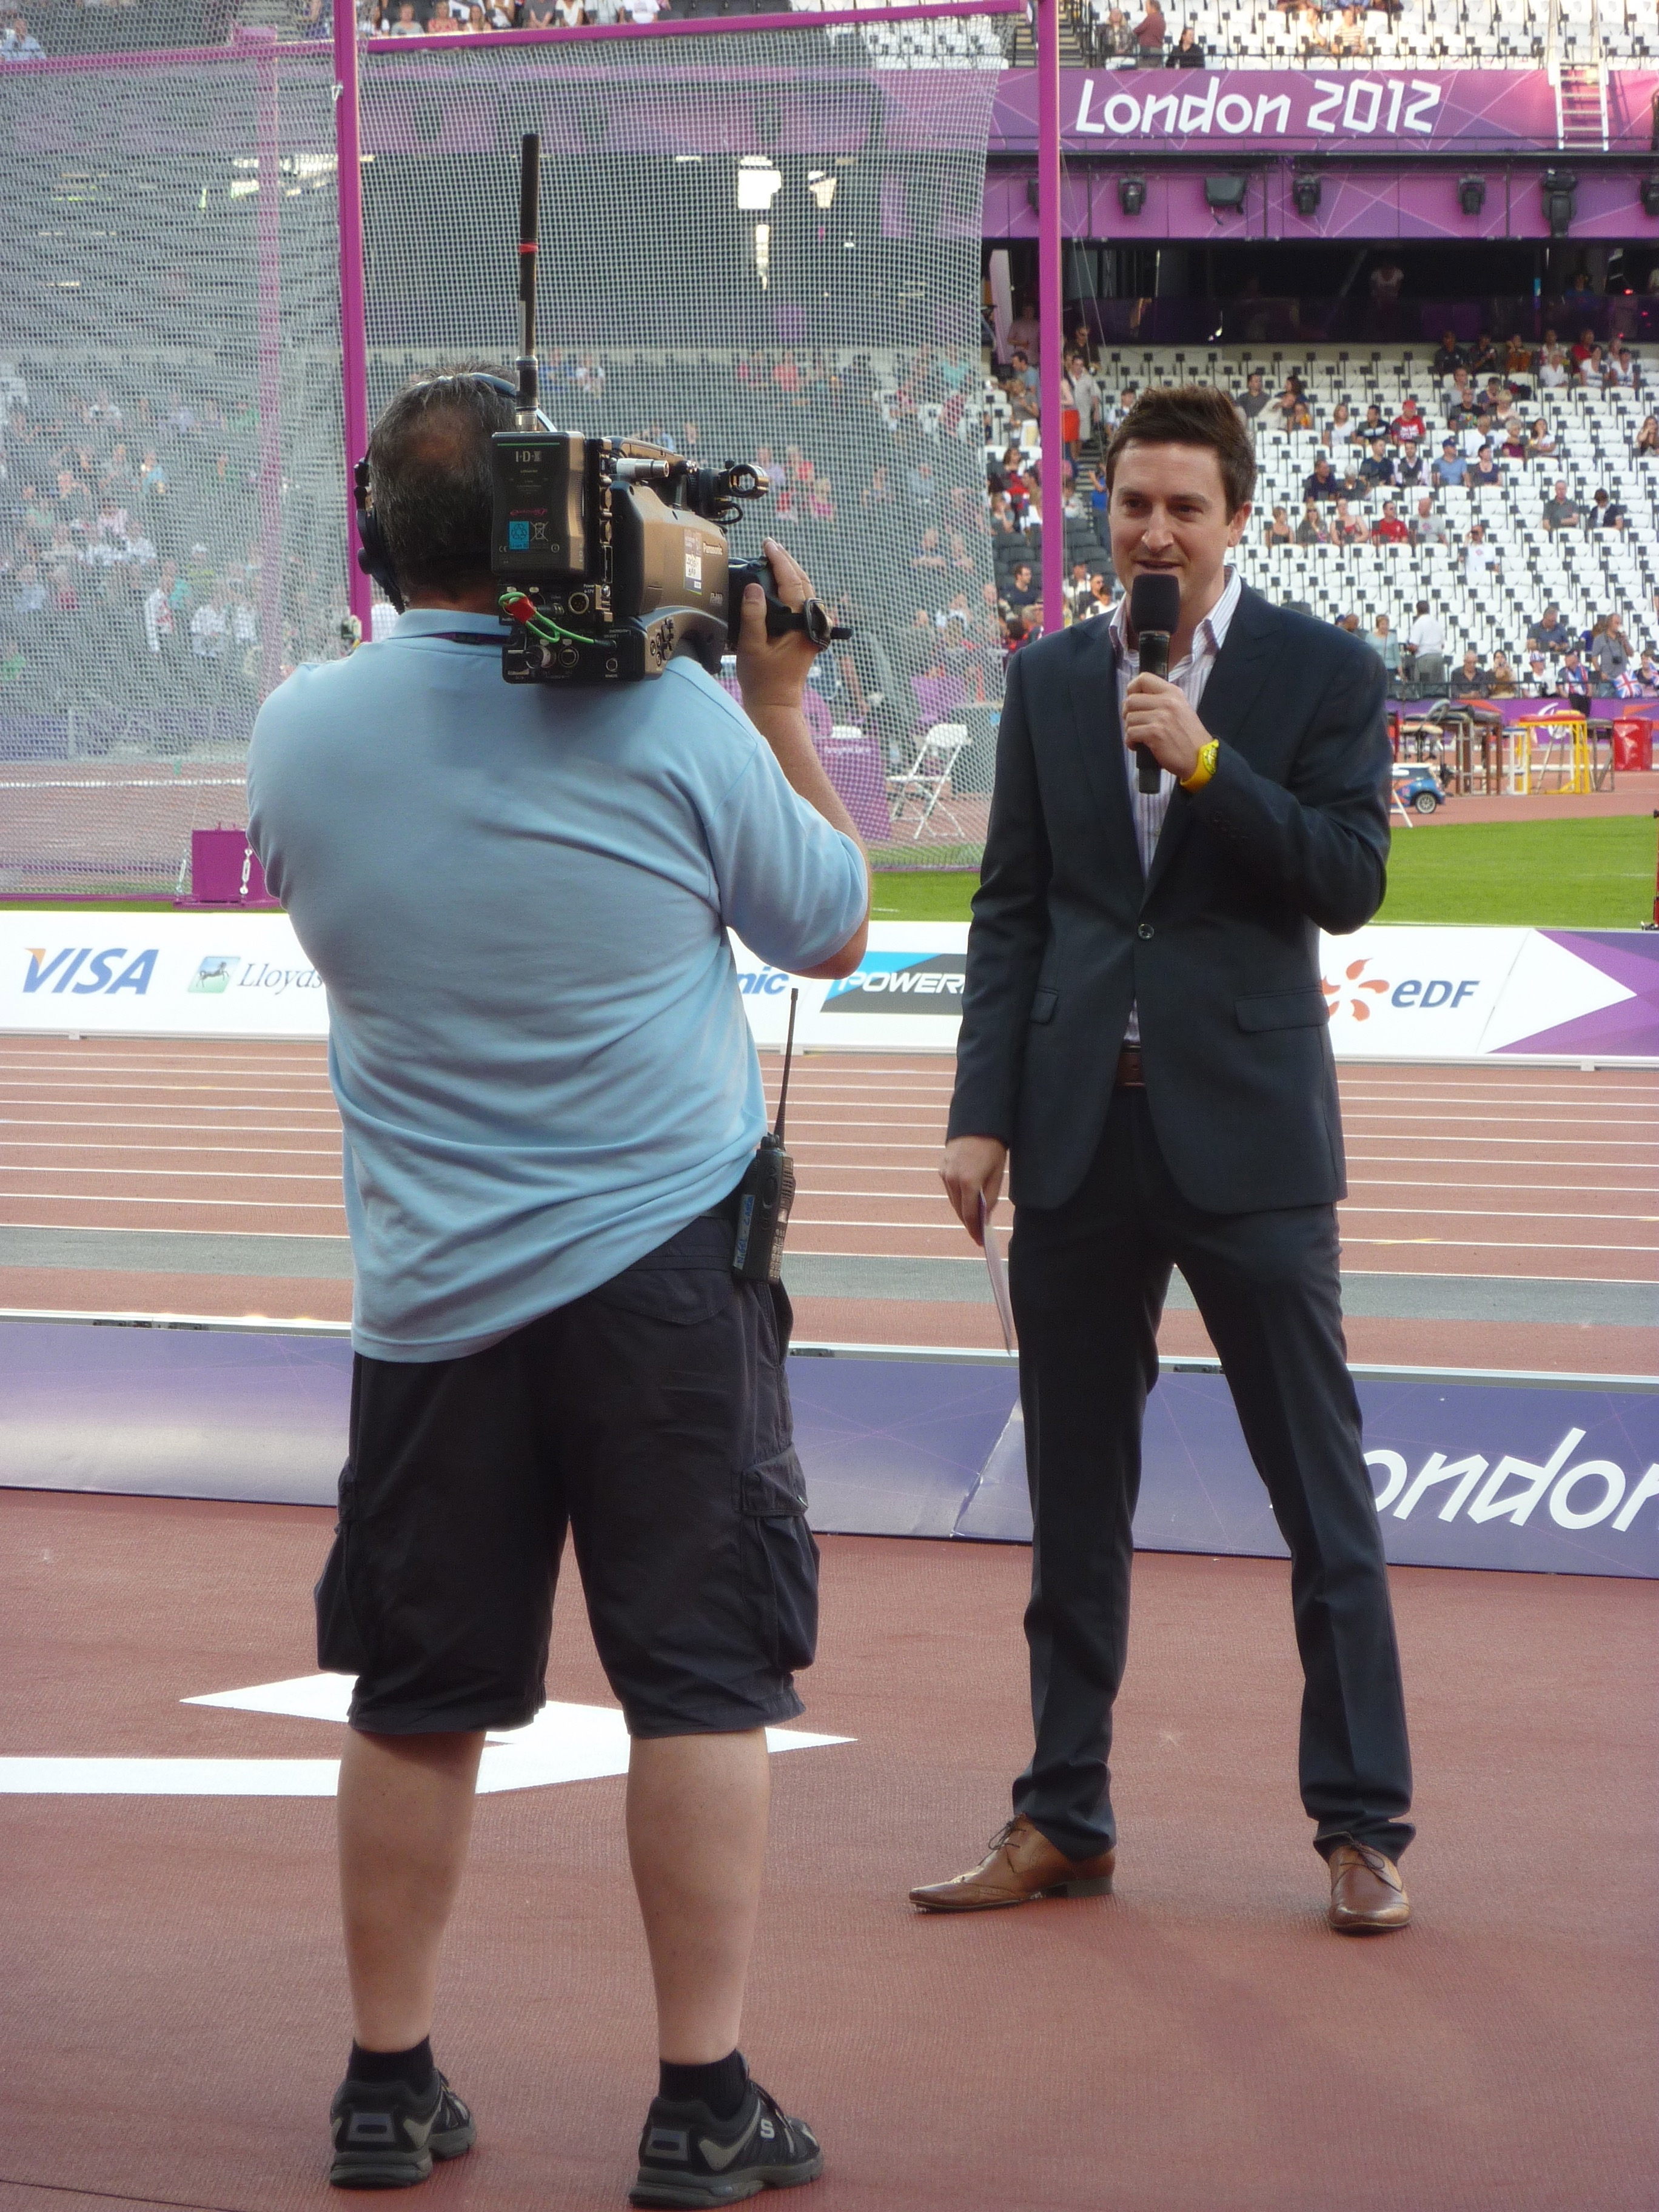 Presenting trackside at the Olympic Stadium